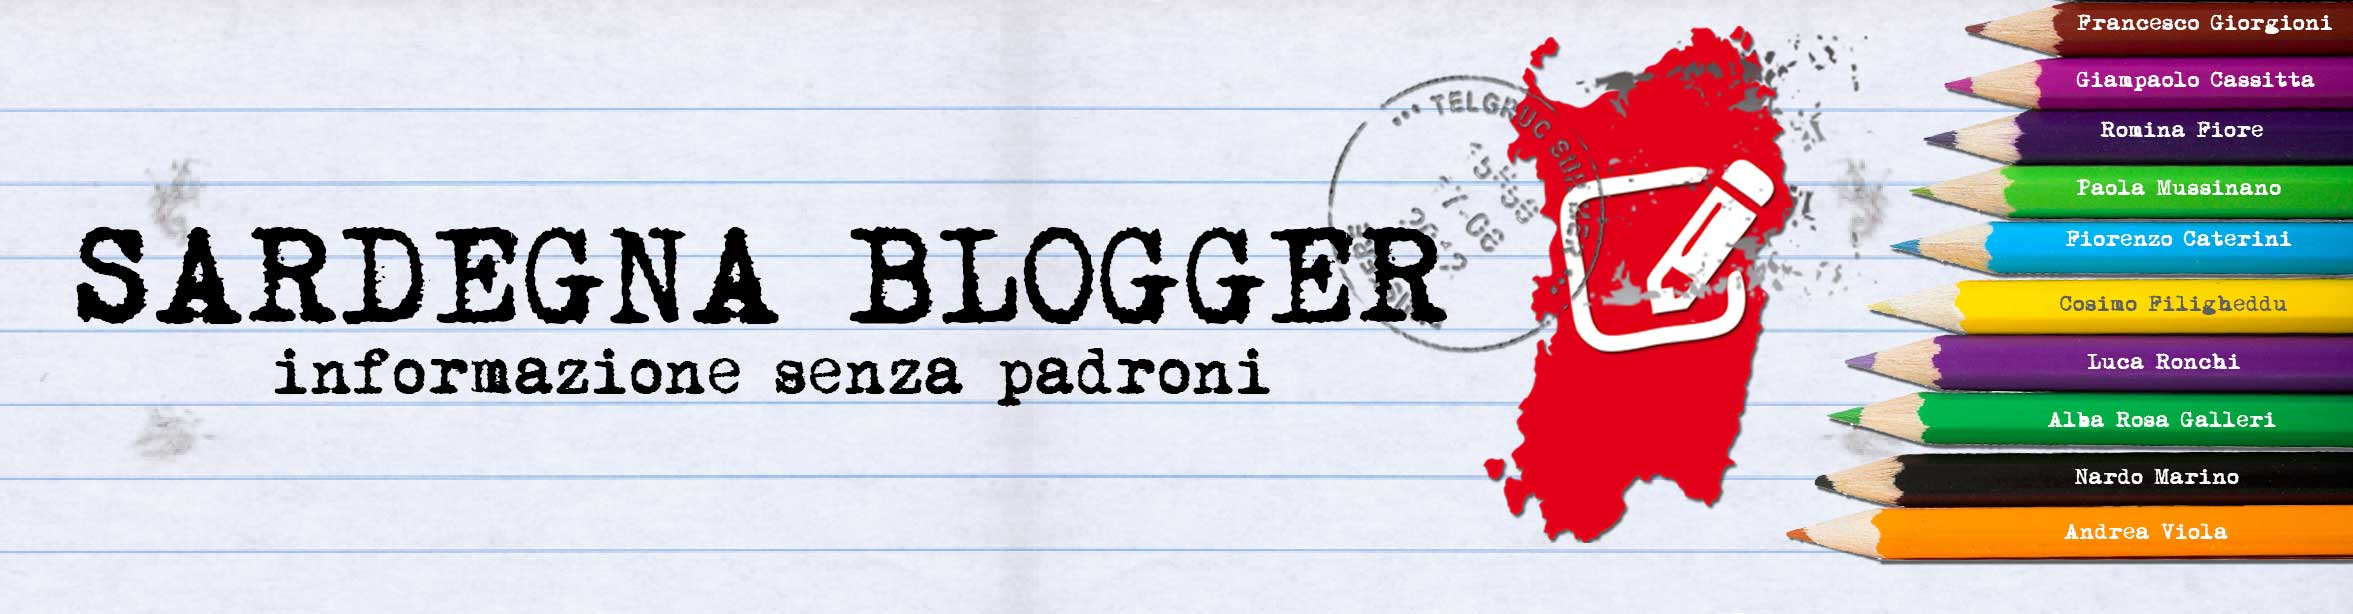 SardegnaBlogger